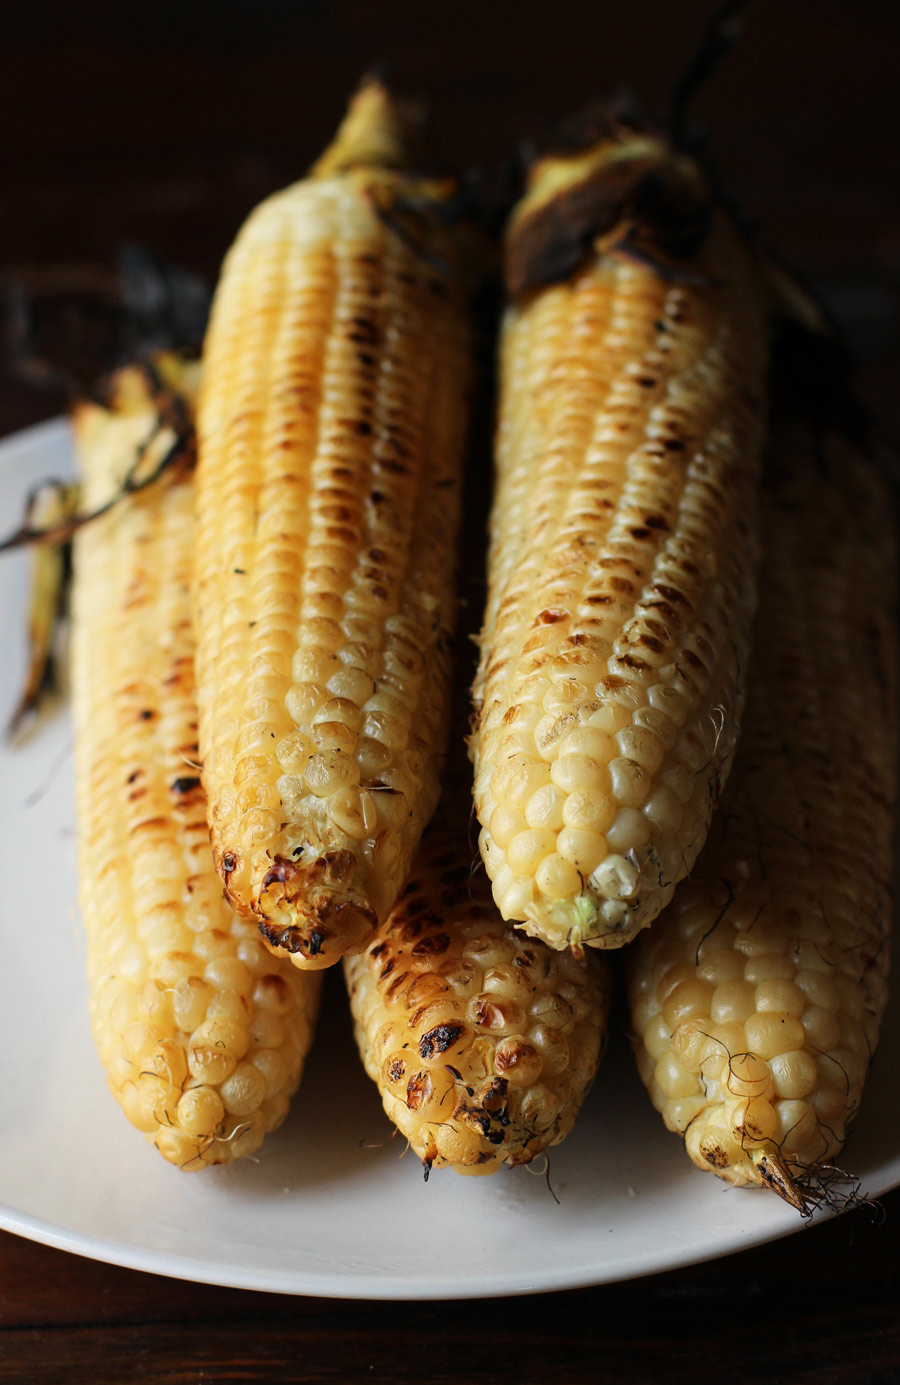 Mexican Elotes Salad with Amaize Sweet Corn